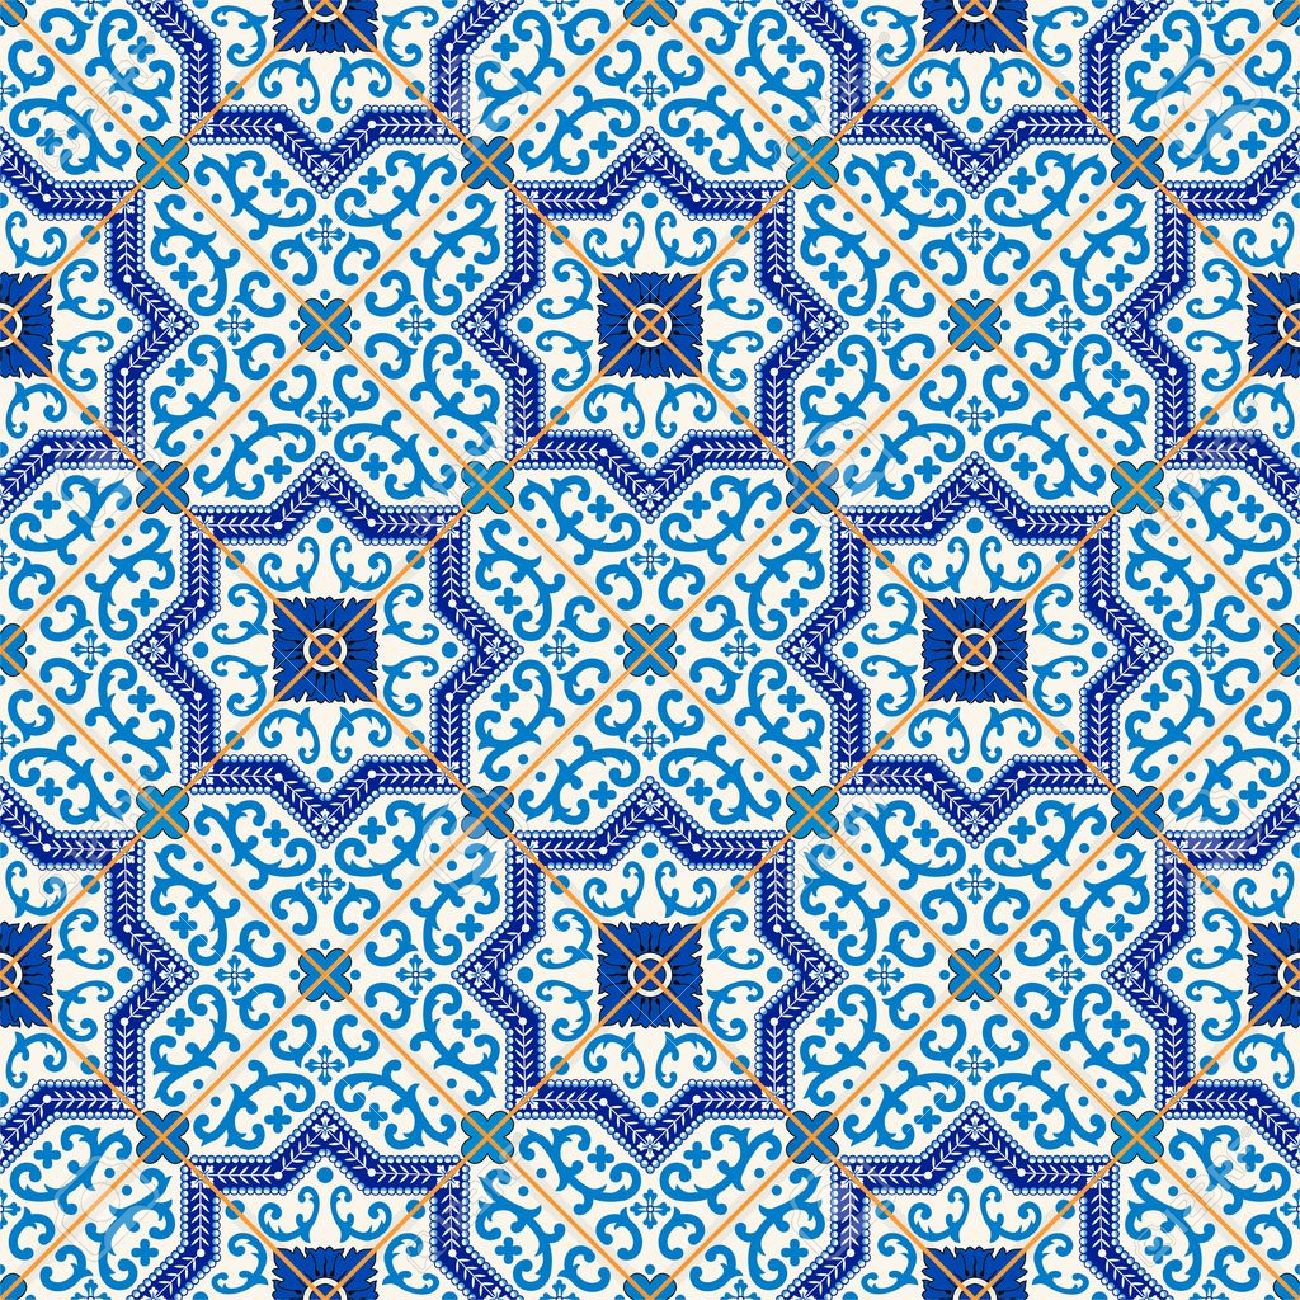 Gorgeous seamless  pattern from dark blue and white Moroccan, Portuguese  tiles, Azulejo, ornaments. Can be used for wallpaper, pattern fills, web page background,surface textures. Stock Vector - 46036002